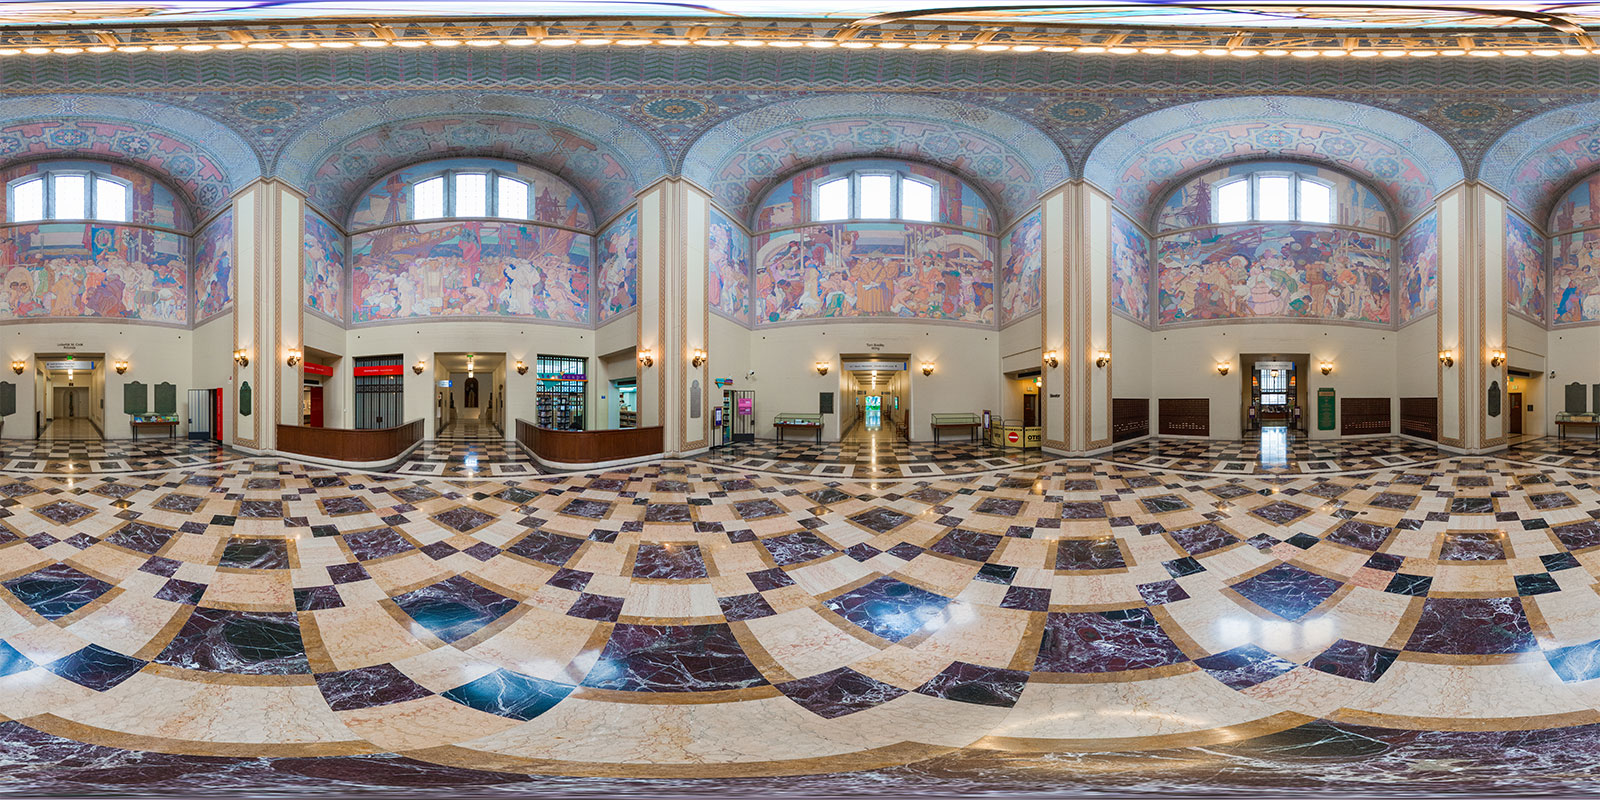 Los Angeles Central Library Rotunda. Interactive panorama by Jim Newberry.